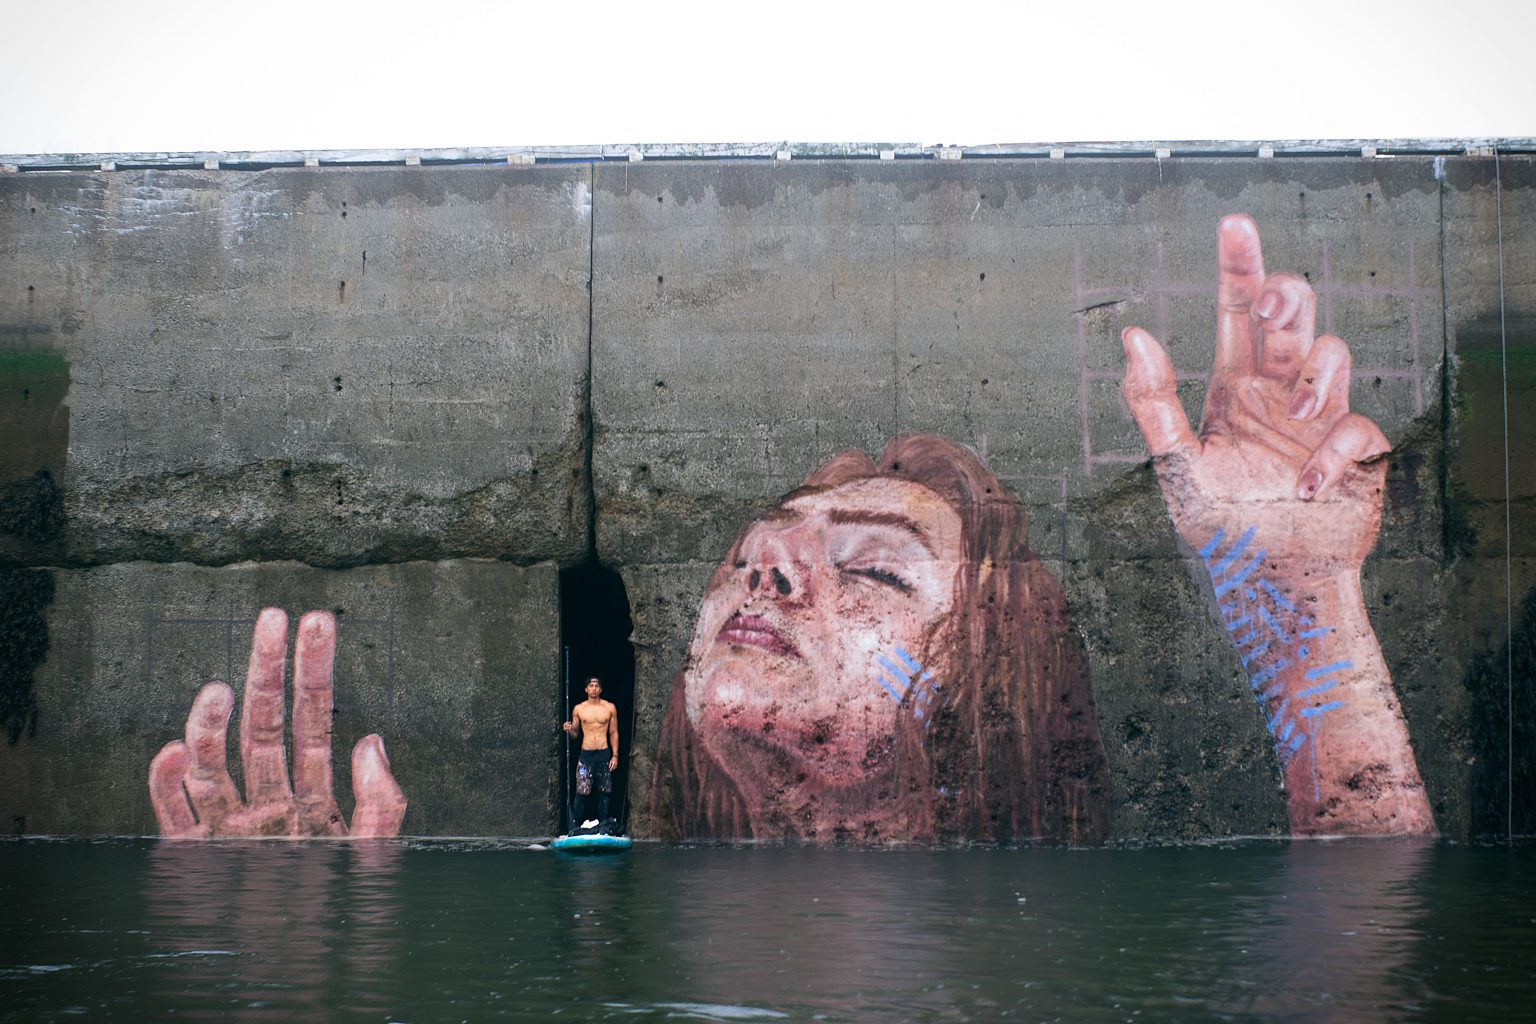 Image: Artist standing on their paddleboard in the forefront of their creation: a massive, stunning painting of a woman reaching out of the waters.